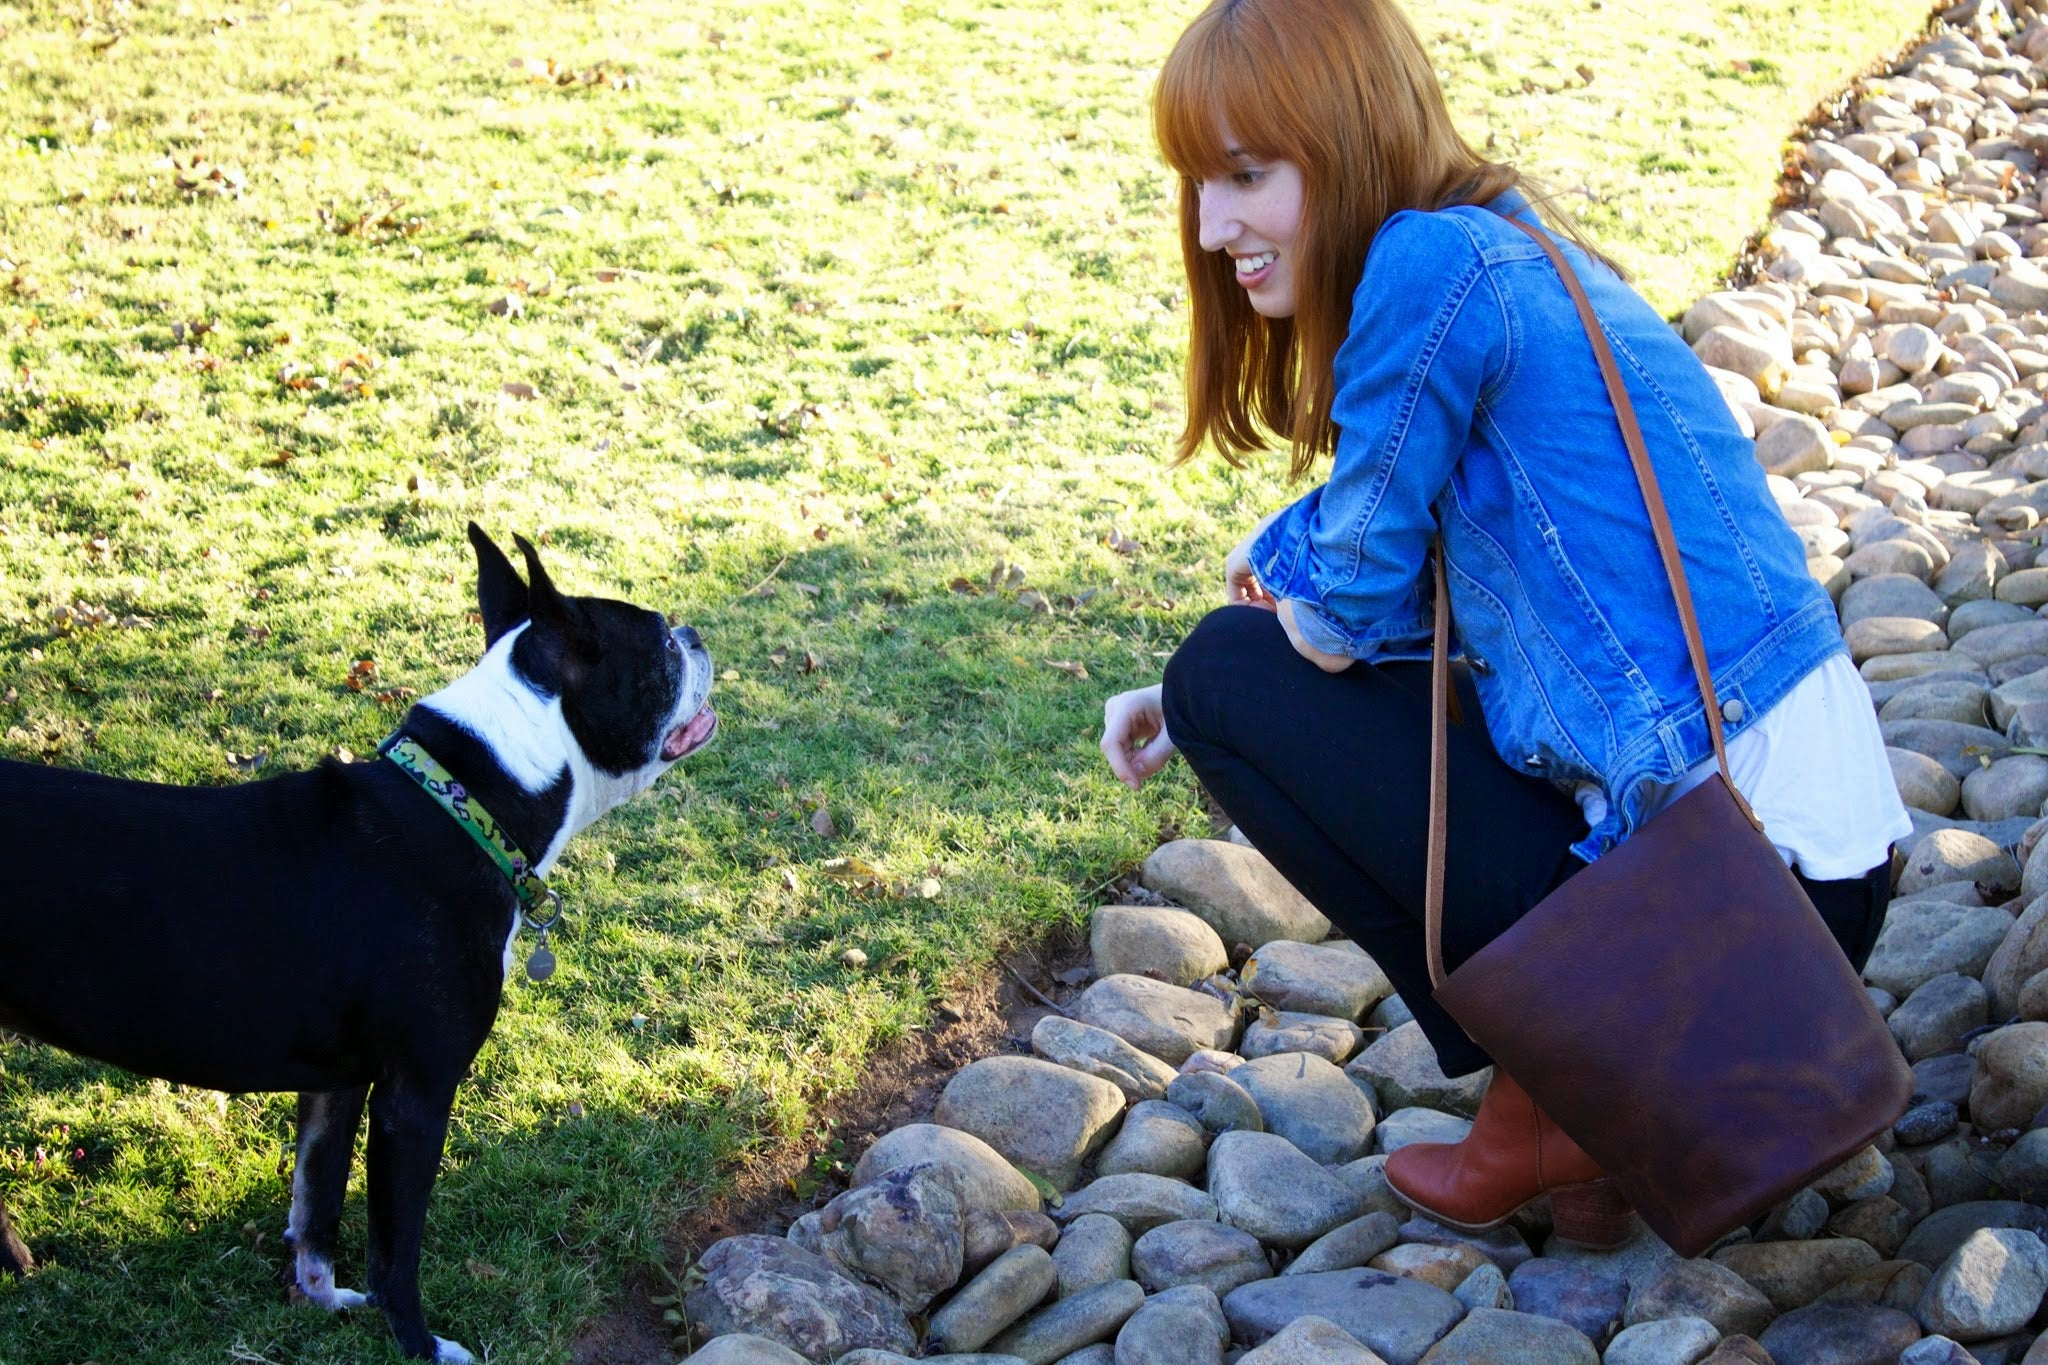 Neva Opet Owner and Maker Rachel Riedinger with her Handcrafted Leather Purse and Dog